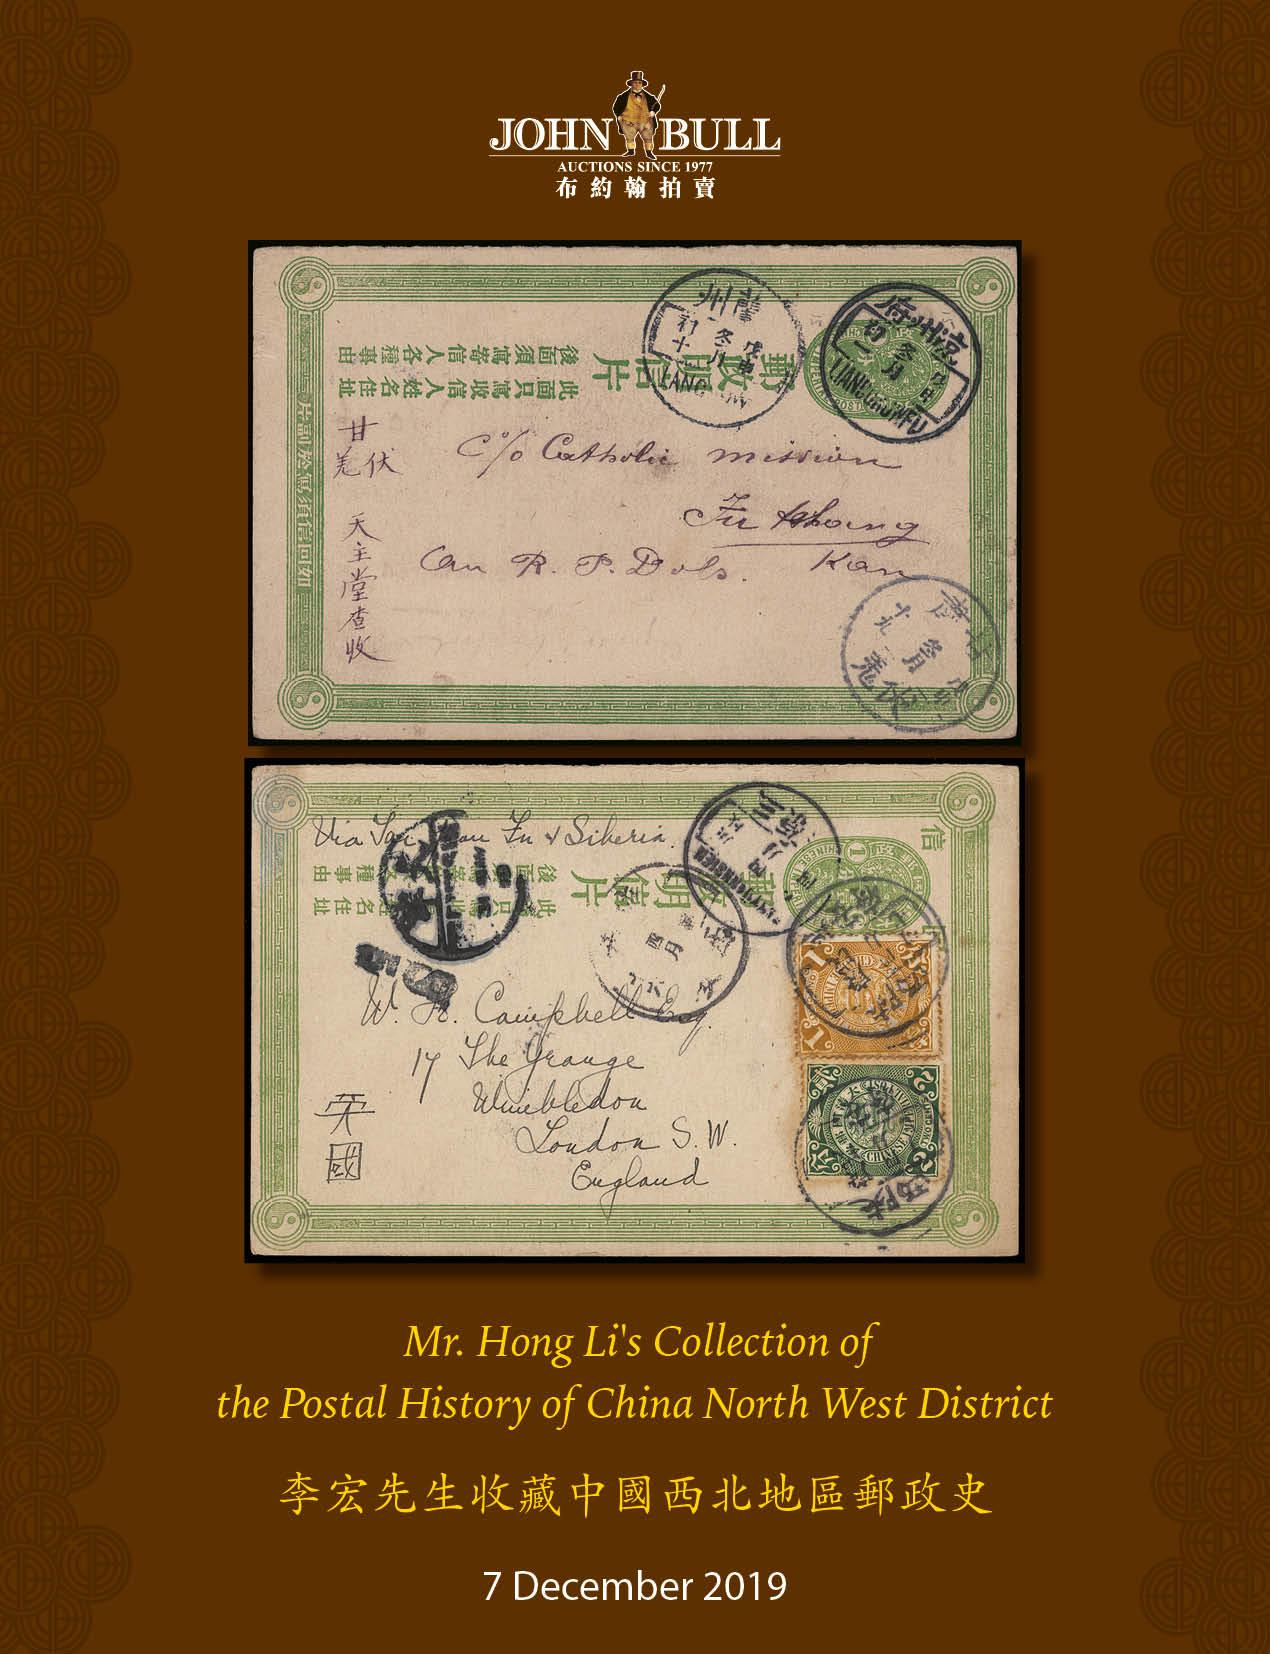 Mr. Hong Li's Collection of the Postal History of China North West District